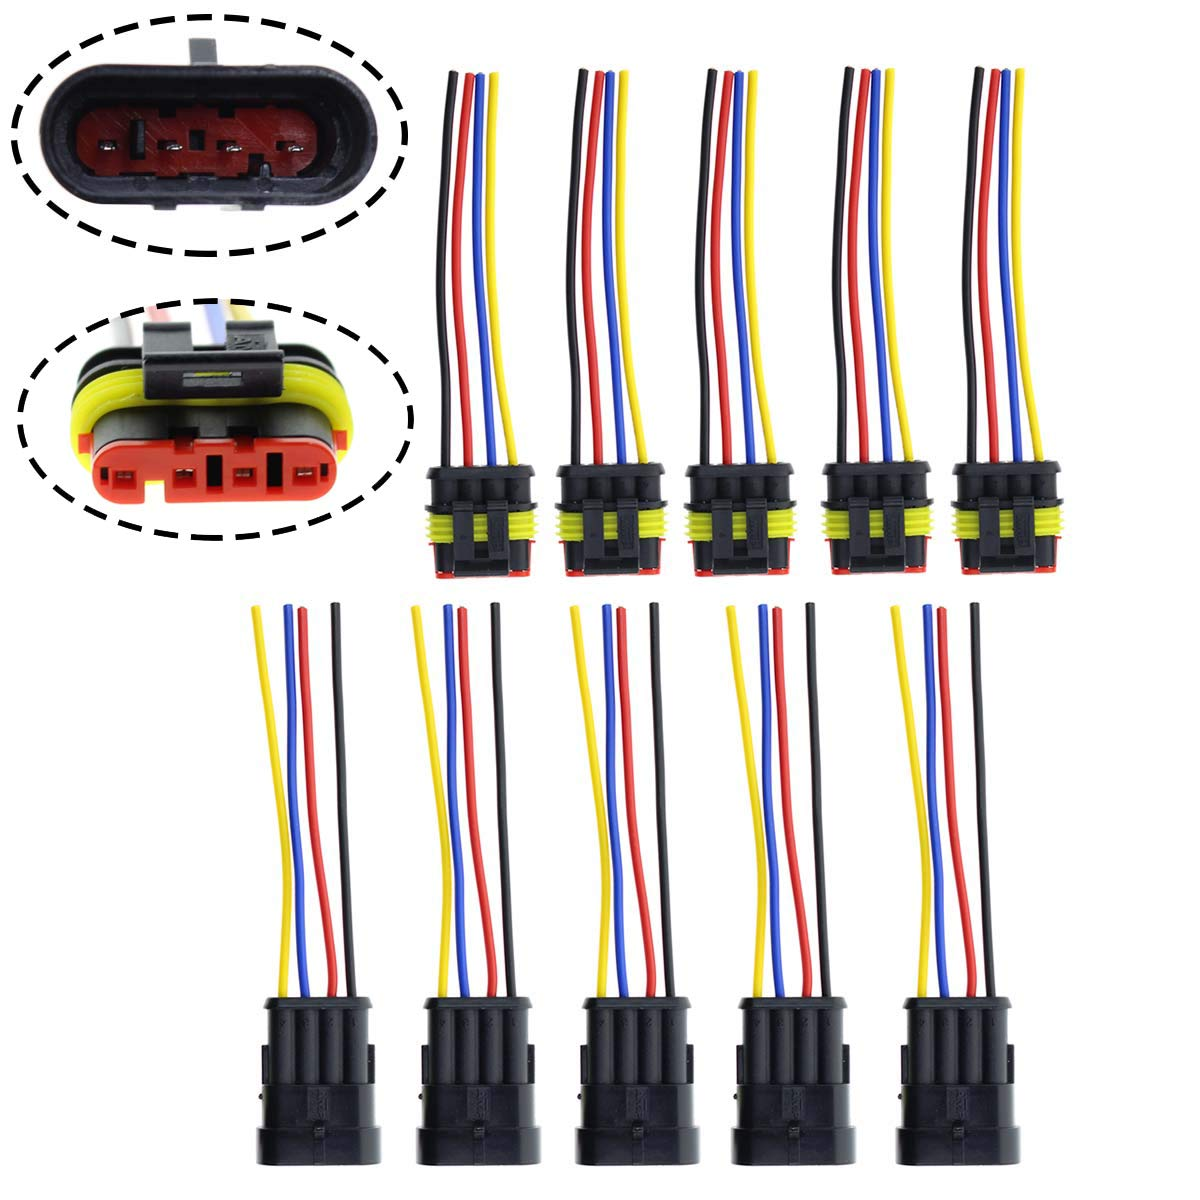 MOTOALL 5 Sets 4 Pin Way 18AWG Waterproof Weatherpack Electrical Connector Kit Male & Female Socket Plug Pigtail Harness Lead Wiring Loom 1.5mm Series Terminal & Rubber Seal with 10cm Wire